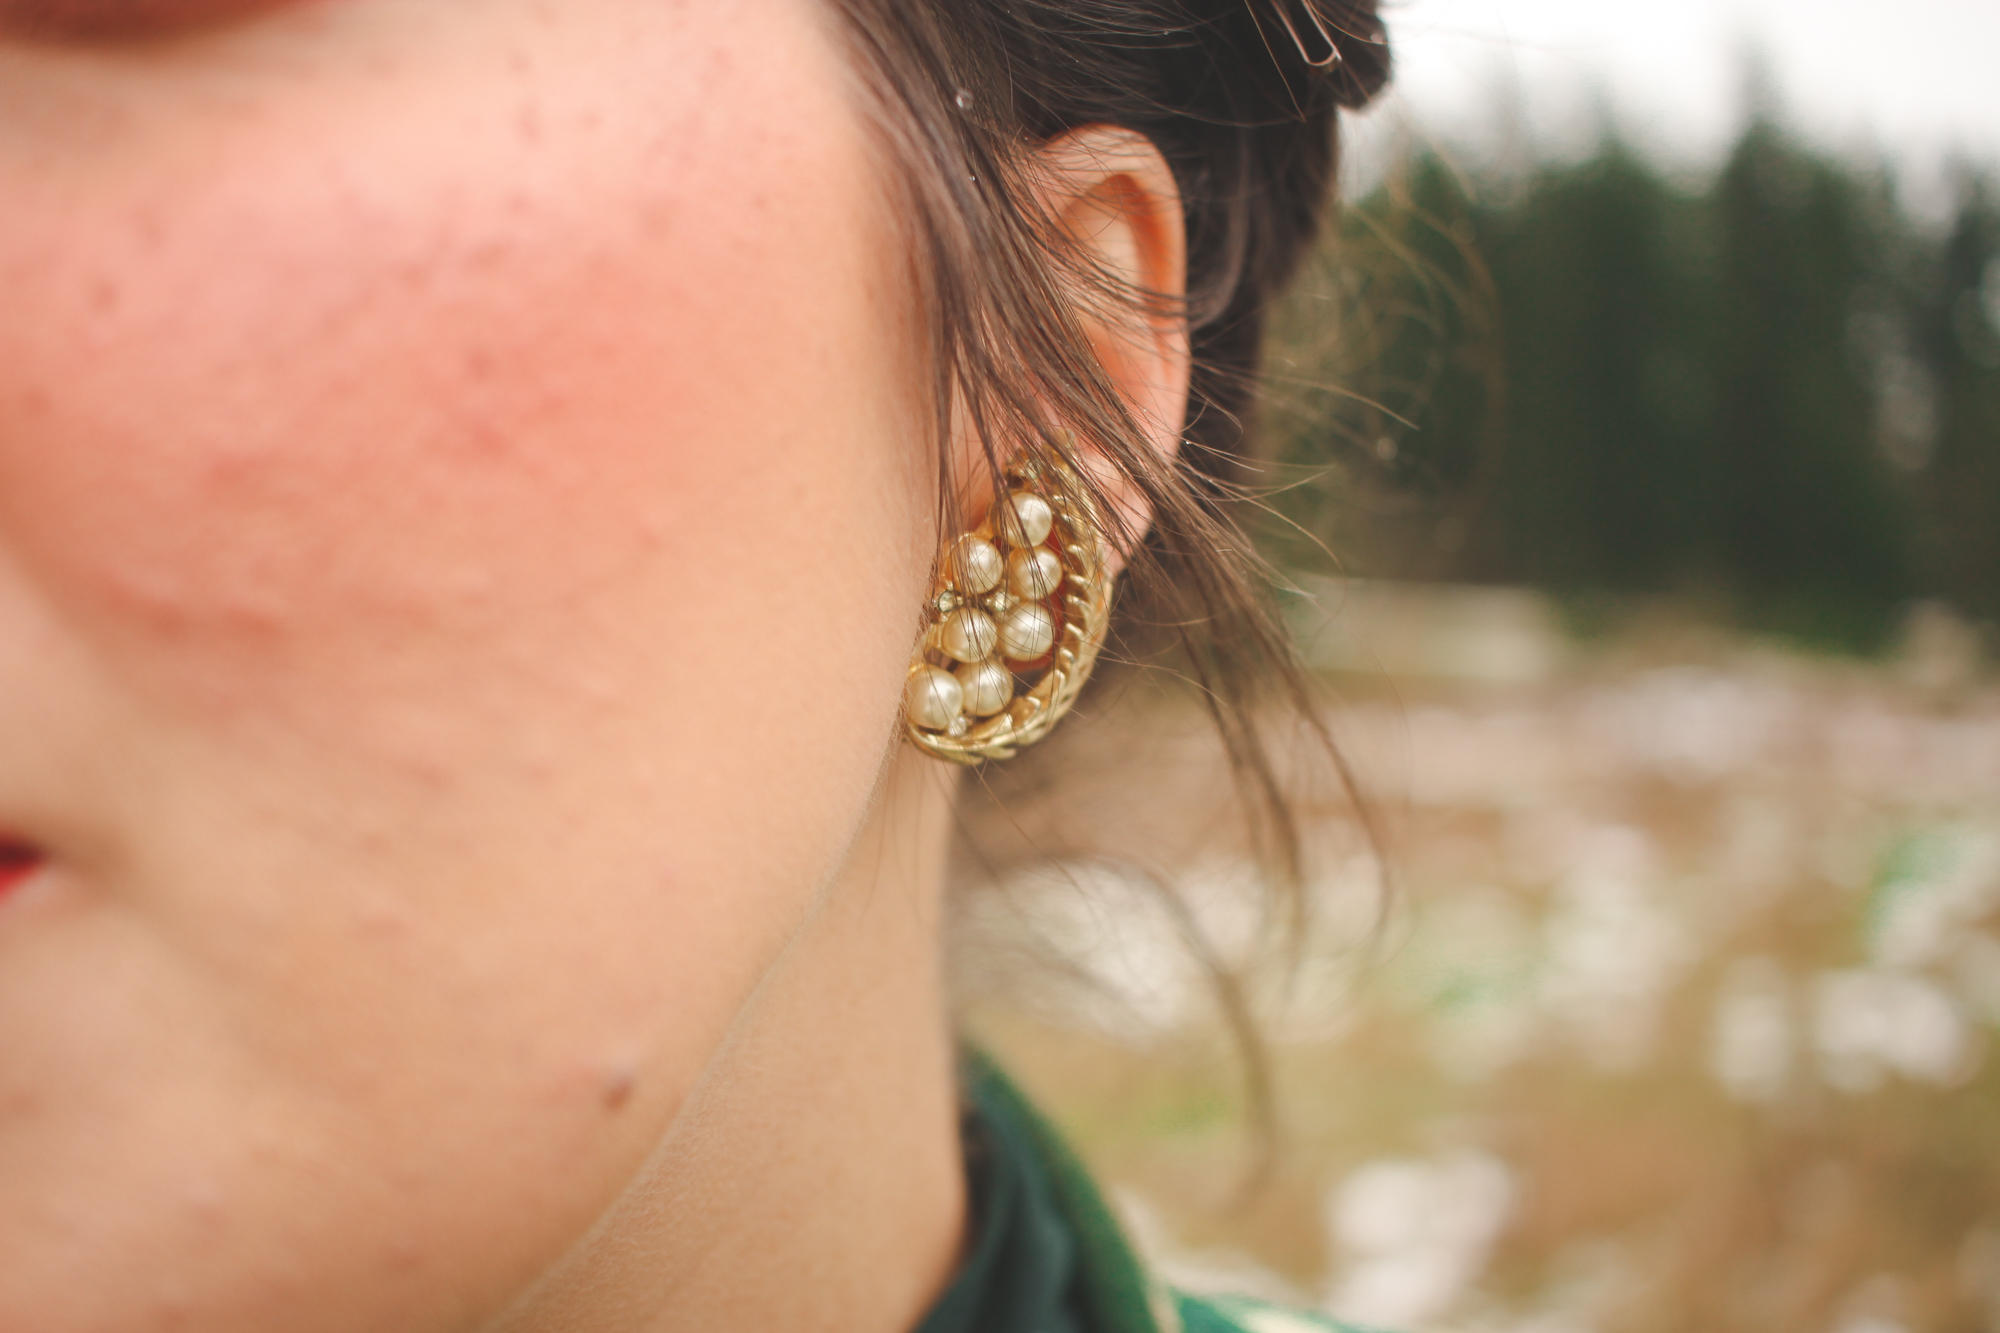 vintage trifari earrings with pearls and leaves